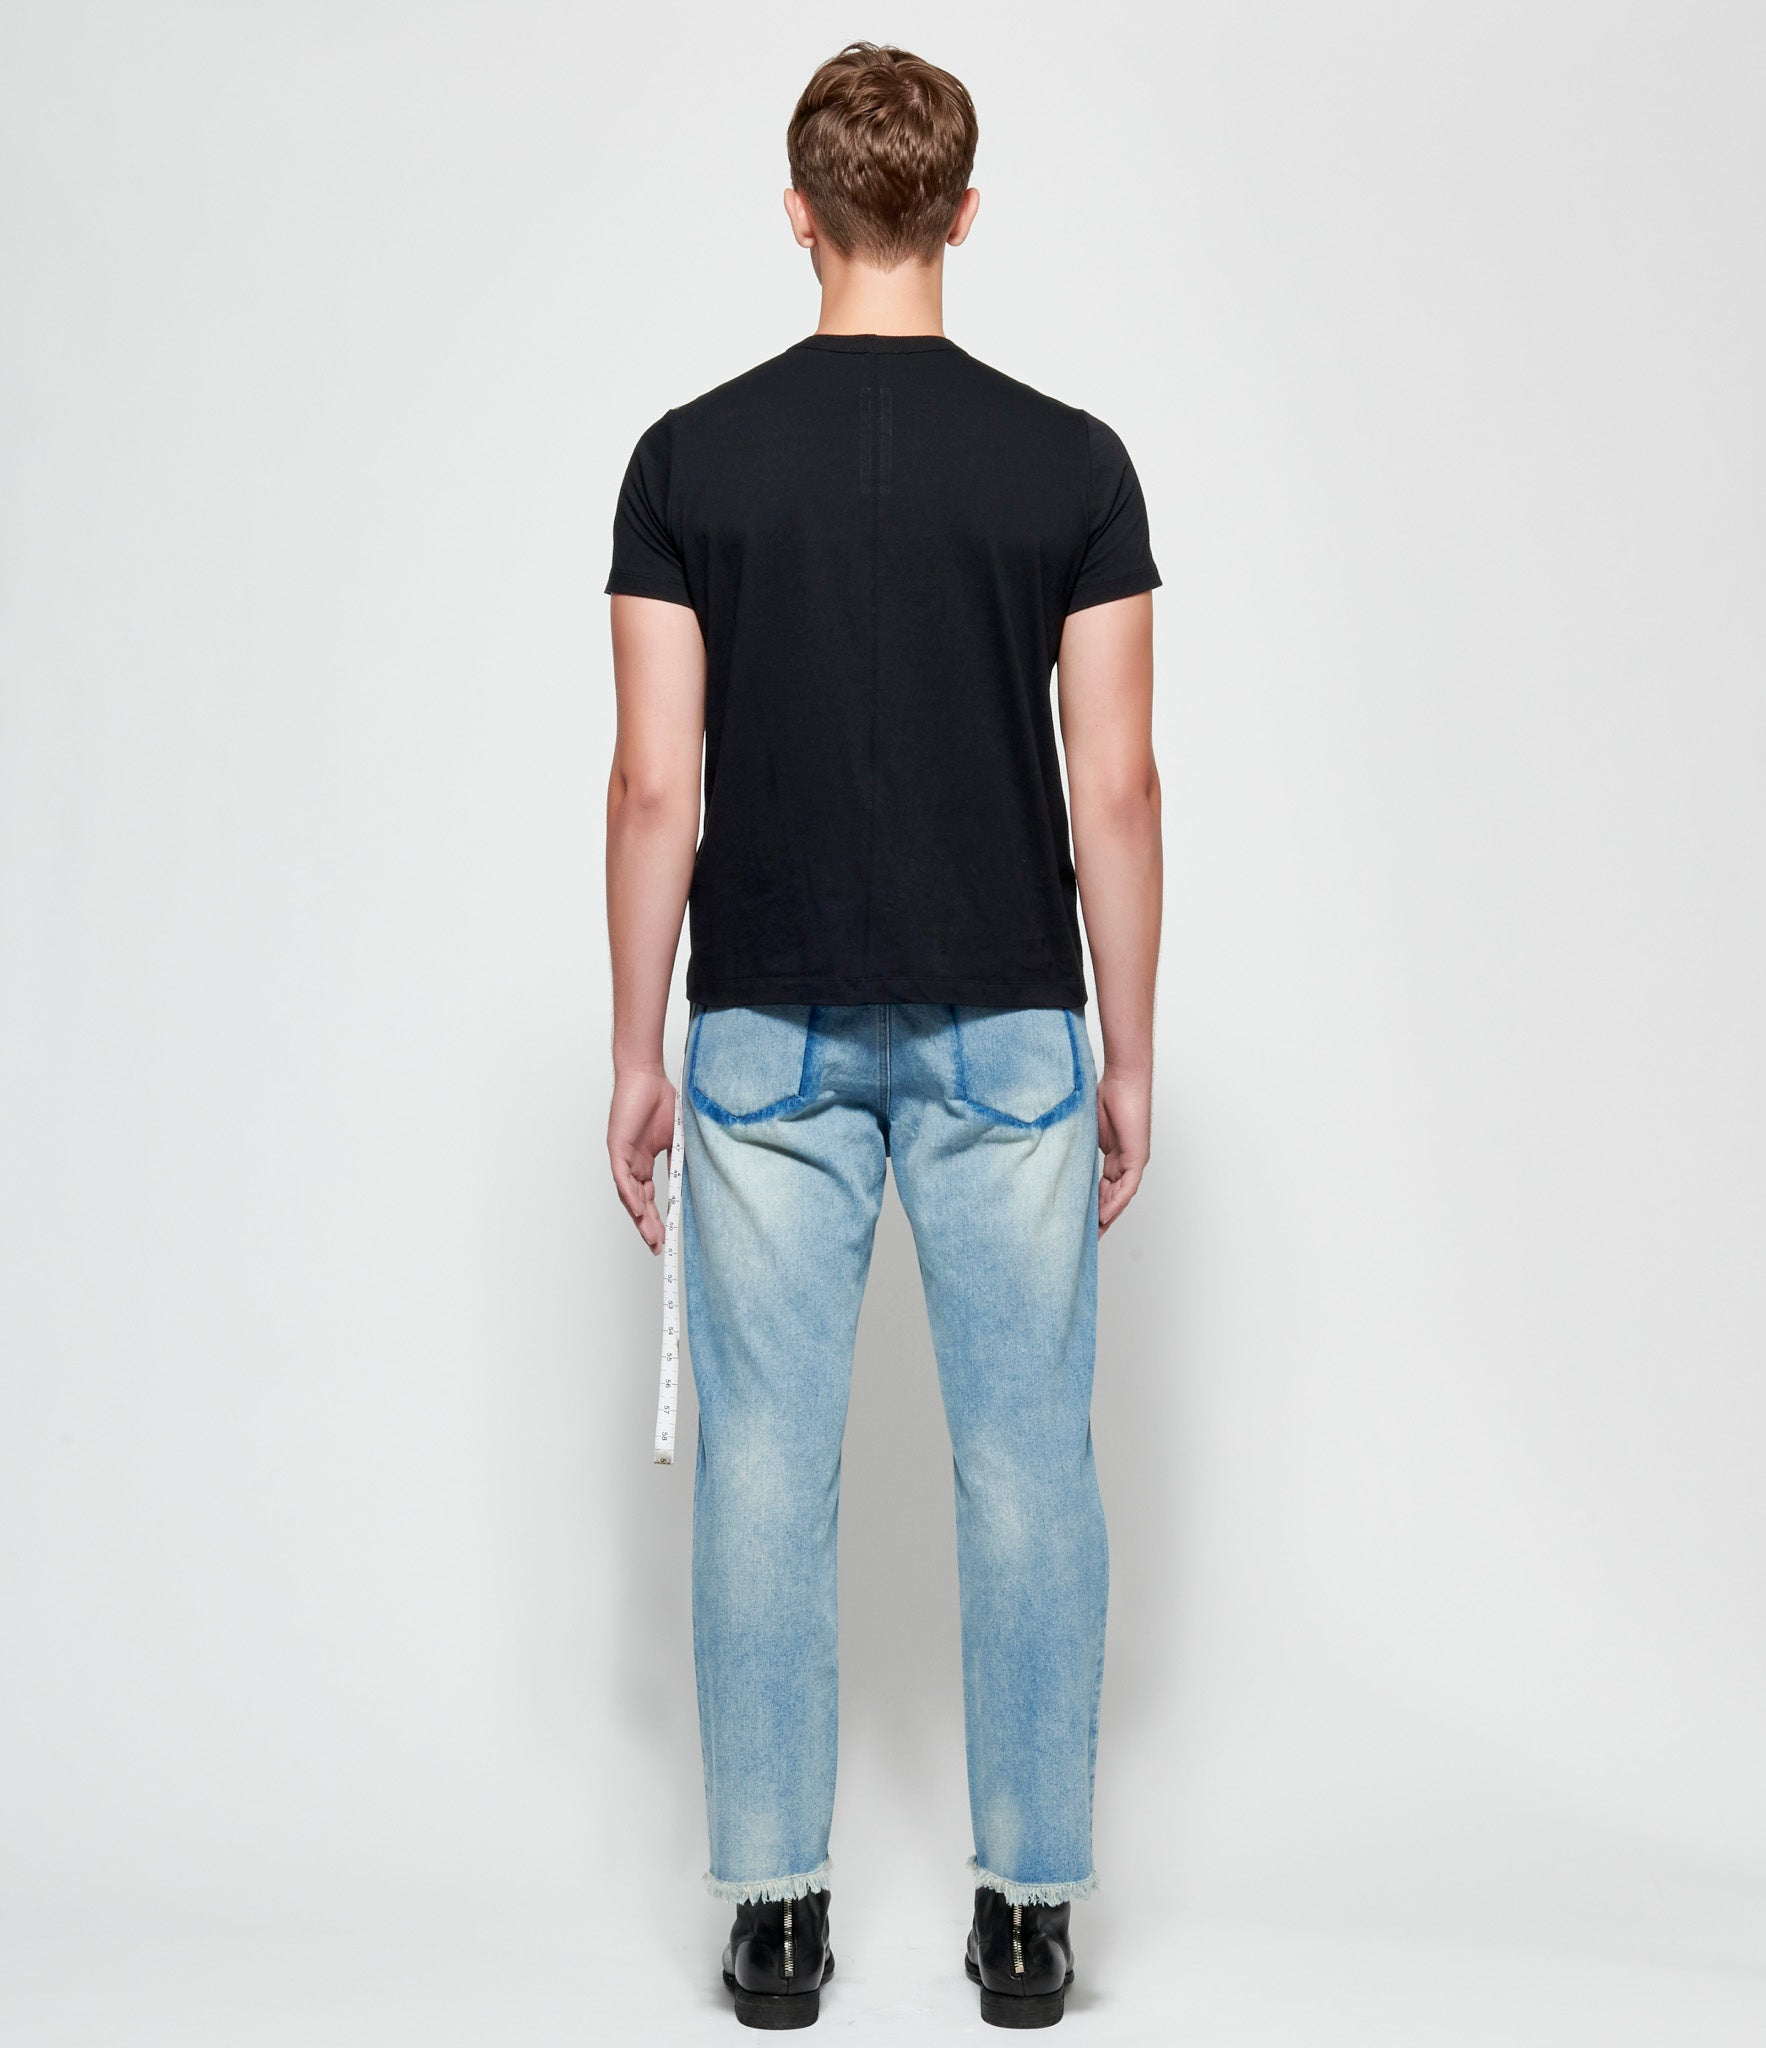 Sagittaire A Measuring Tape Faded Denim Jeans